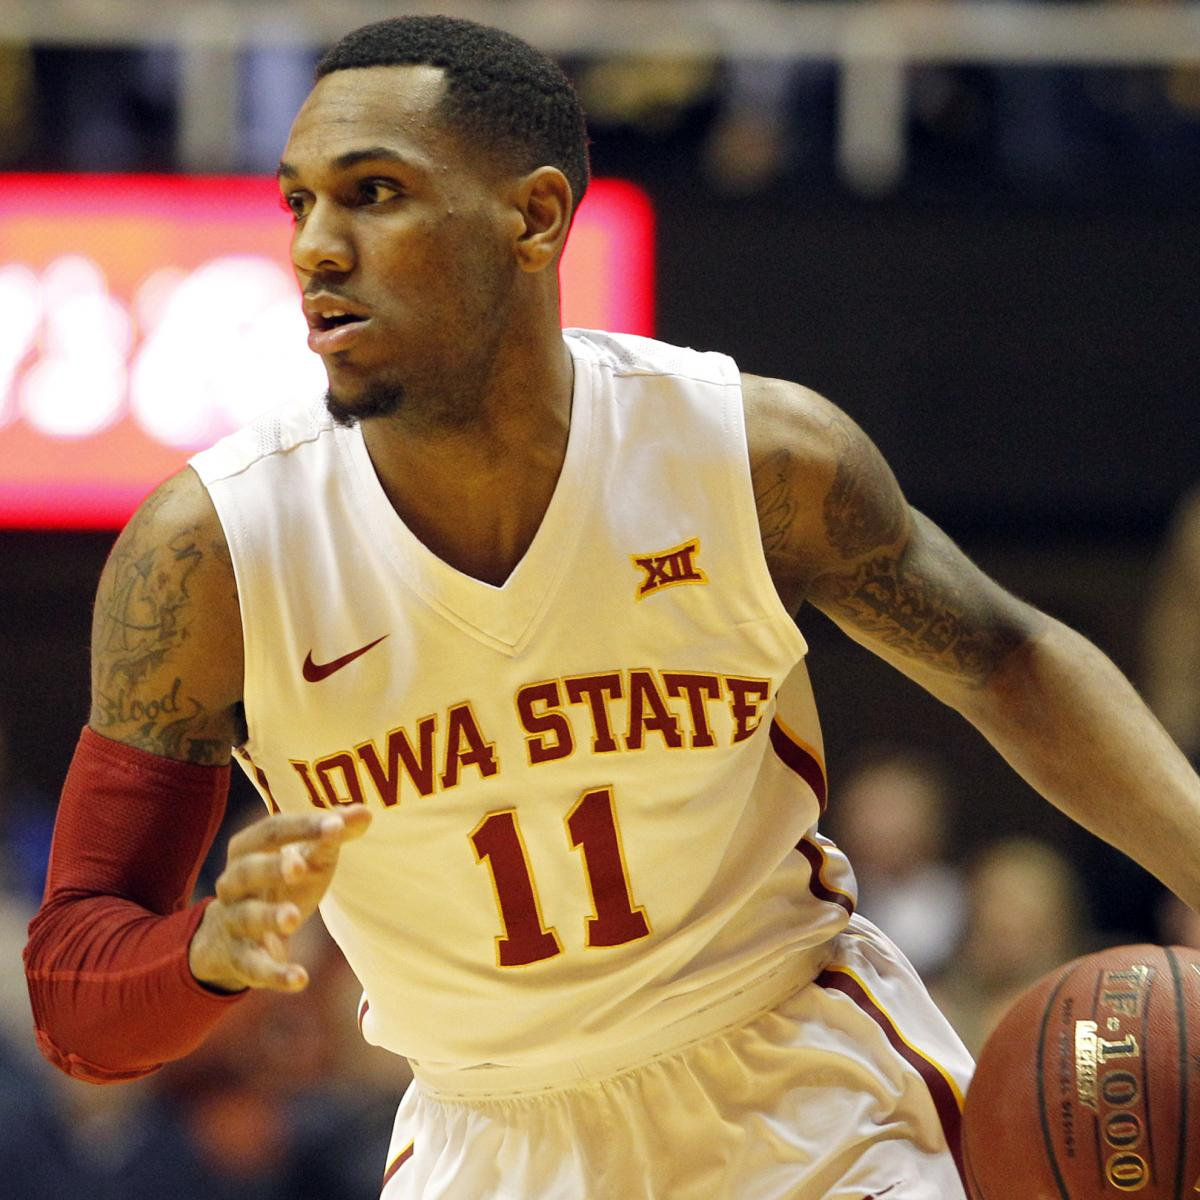 Iowa states monte morris is the ultimate giver on and off the court iowa states monte morris is the ultimate giver on and off the court bleacher report latest news videos and highlights publicscrutiny Gallery